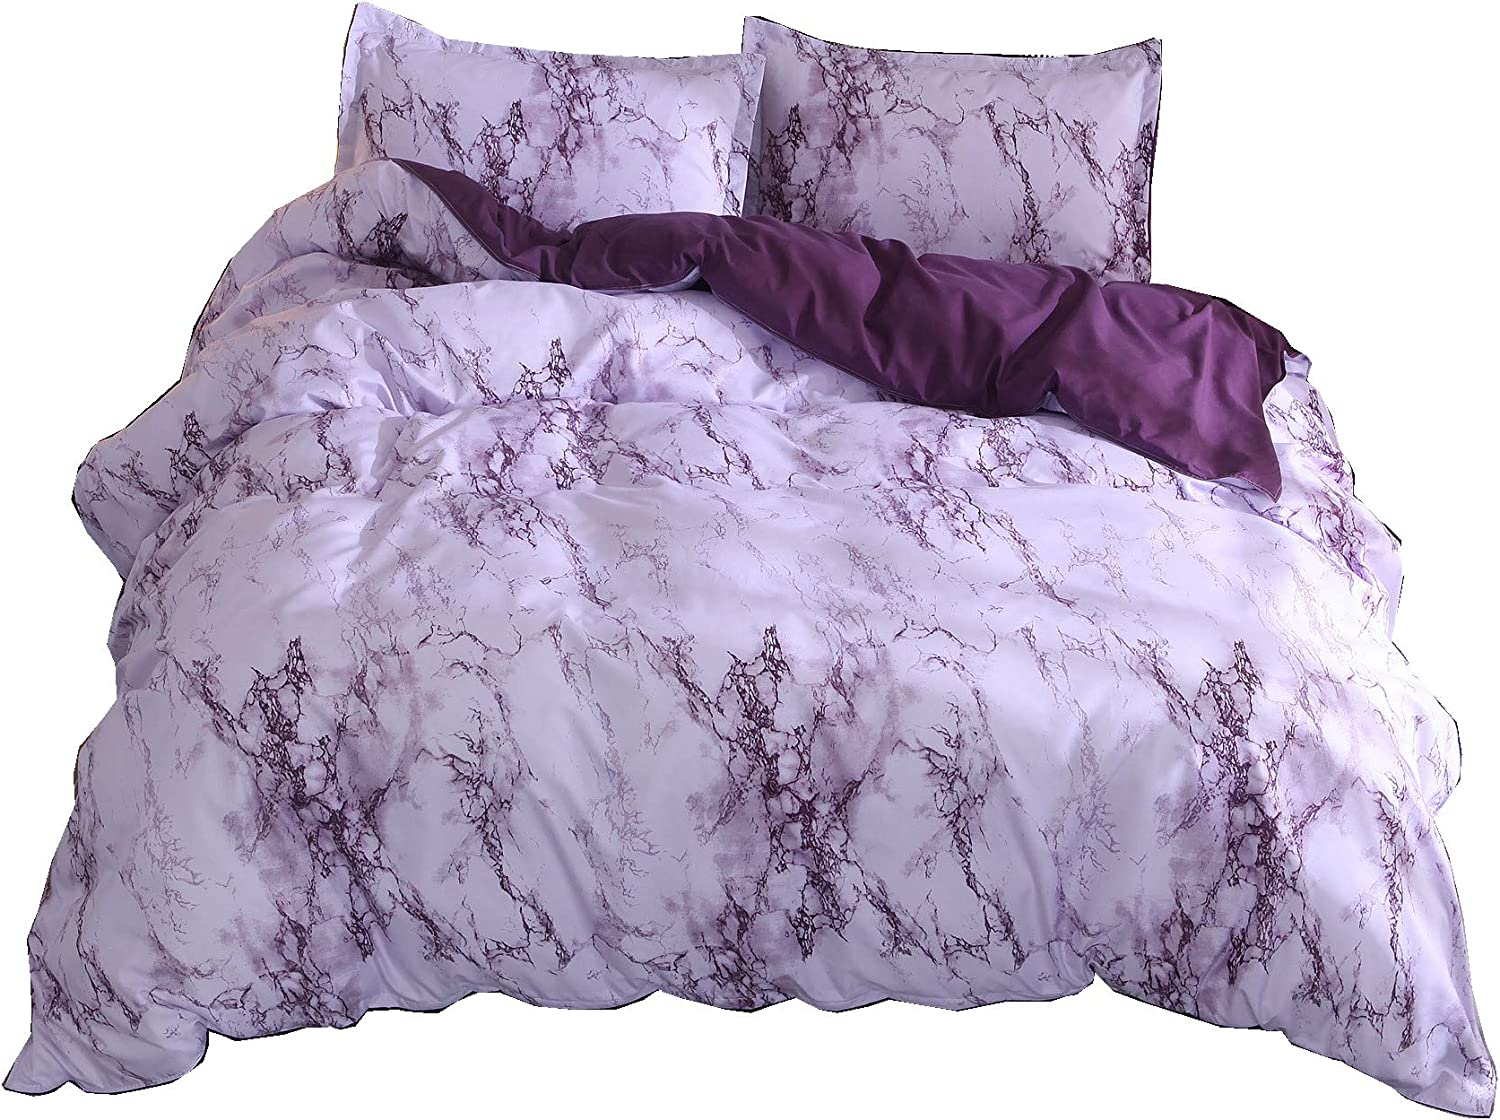 A Nice Night Lightweight Microfiber Quilt Cover Bedding Duvet Cover Set,Purple Marble - Full Size